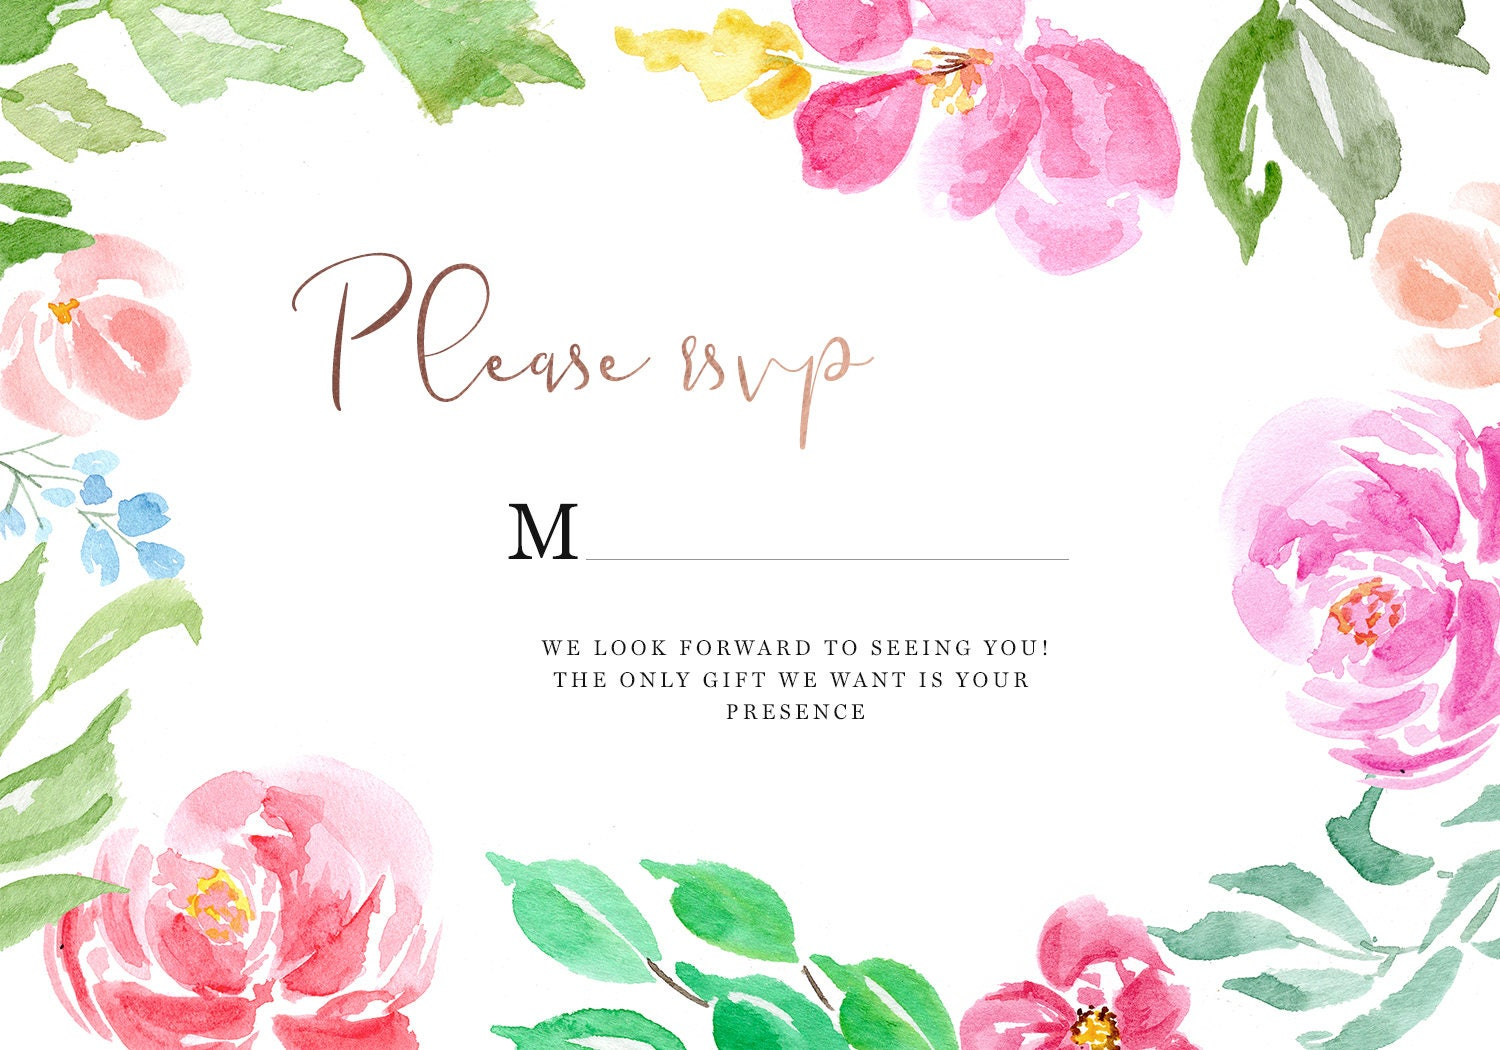 Beautiful Flower Borders For A4 Size Paper Flower Borders For A4